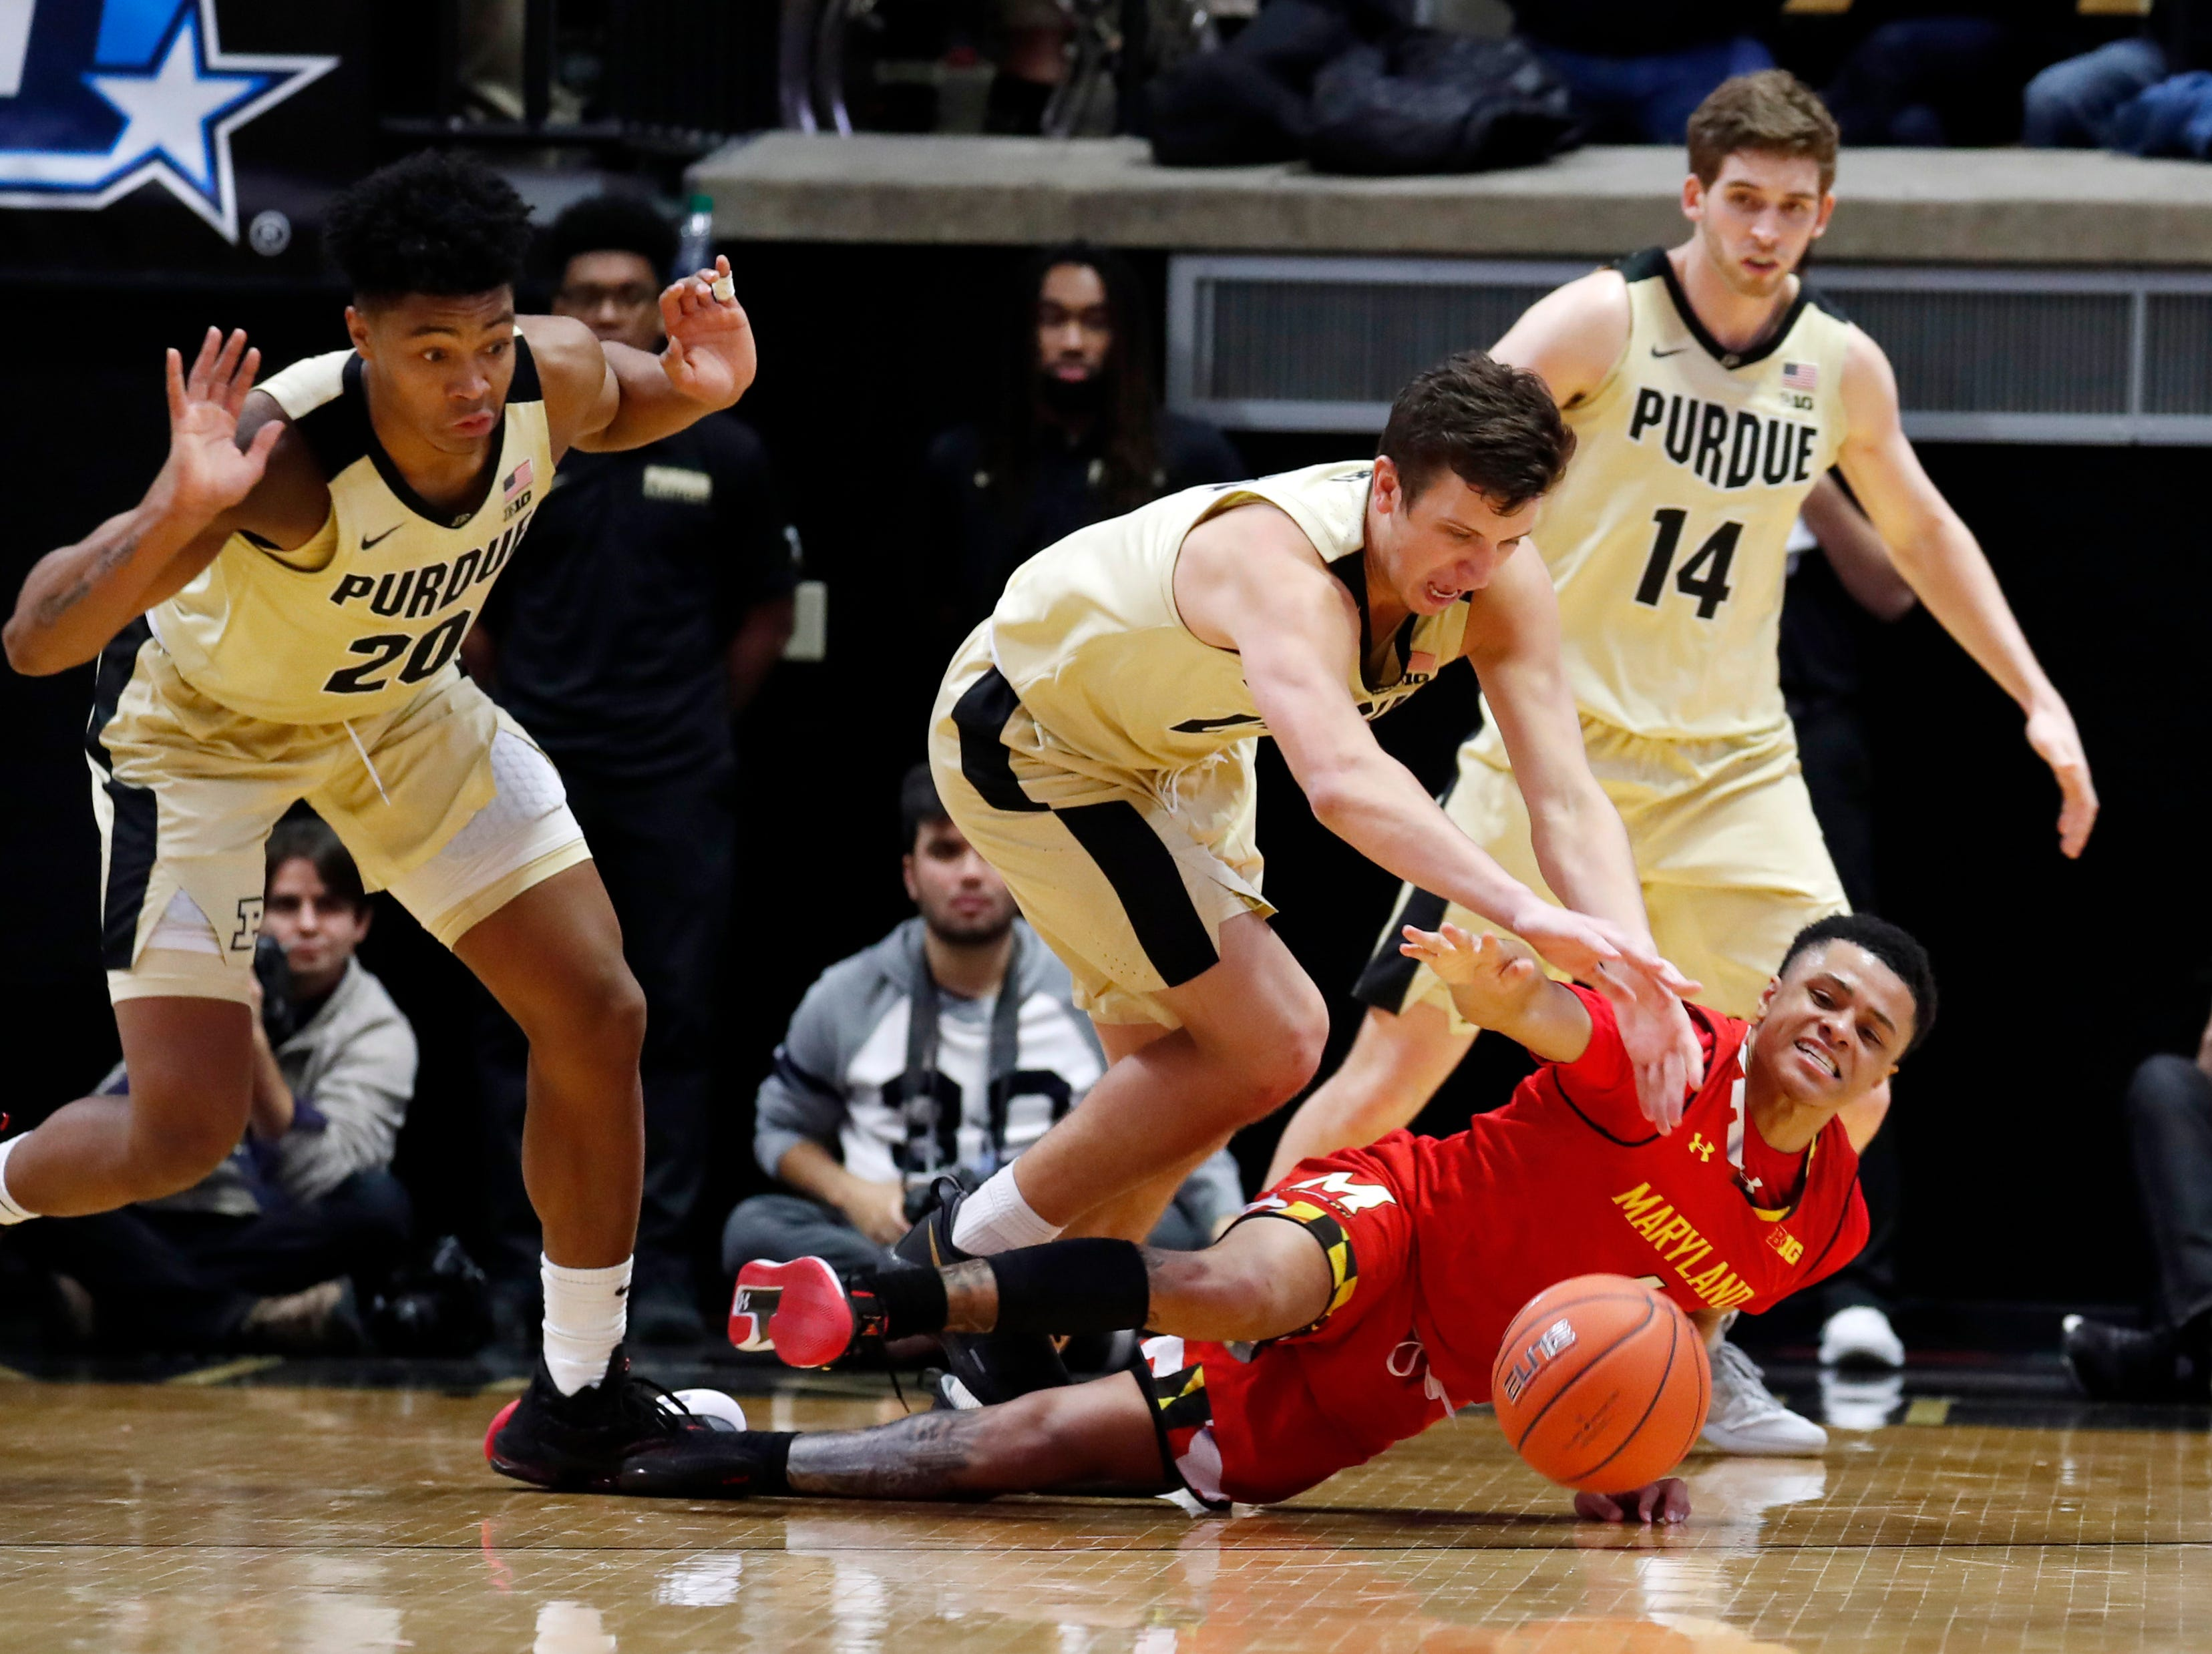 Dec 6, 2018; West Lafayette, IN, USA; Maryland Terrapins guard Anthony Cowan Jr. (1) scrambles for a loose ball against Purdue Boilermakers forward Grady Eifert (24) during the second half at Mackey Arena. Mandatory Credit: Brian Spurlock-USA TODAY Sports